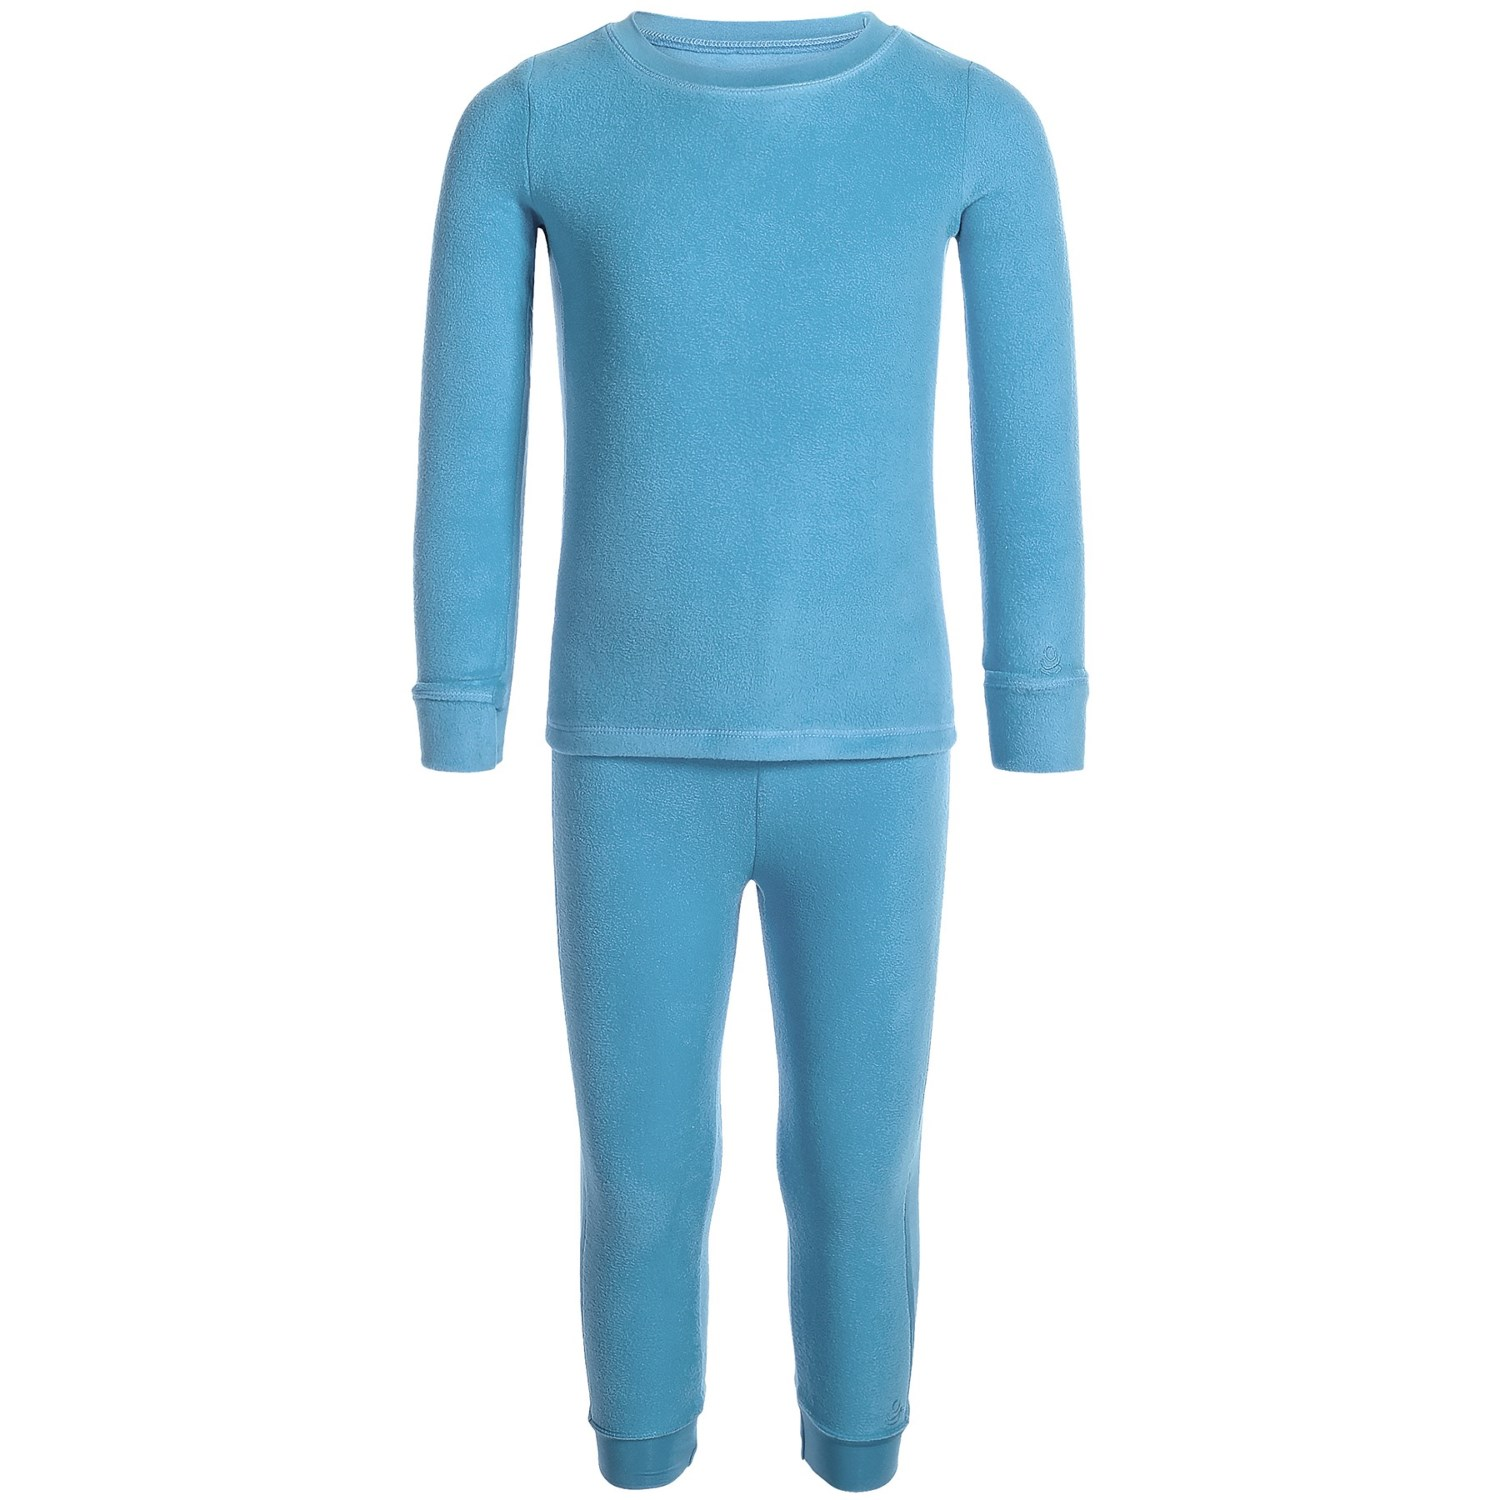 cuddl duds fleece base layer top and pants set long sleeve for toddler girls - Cuddleduds